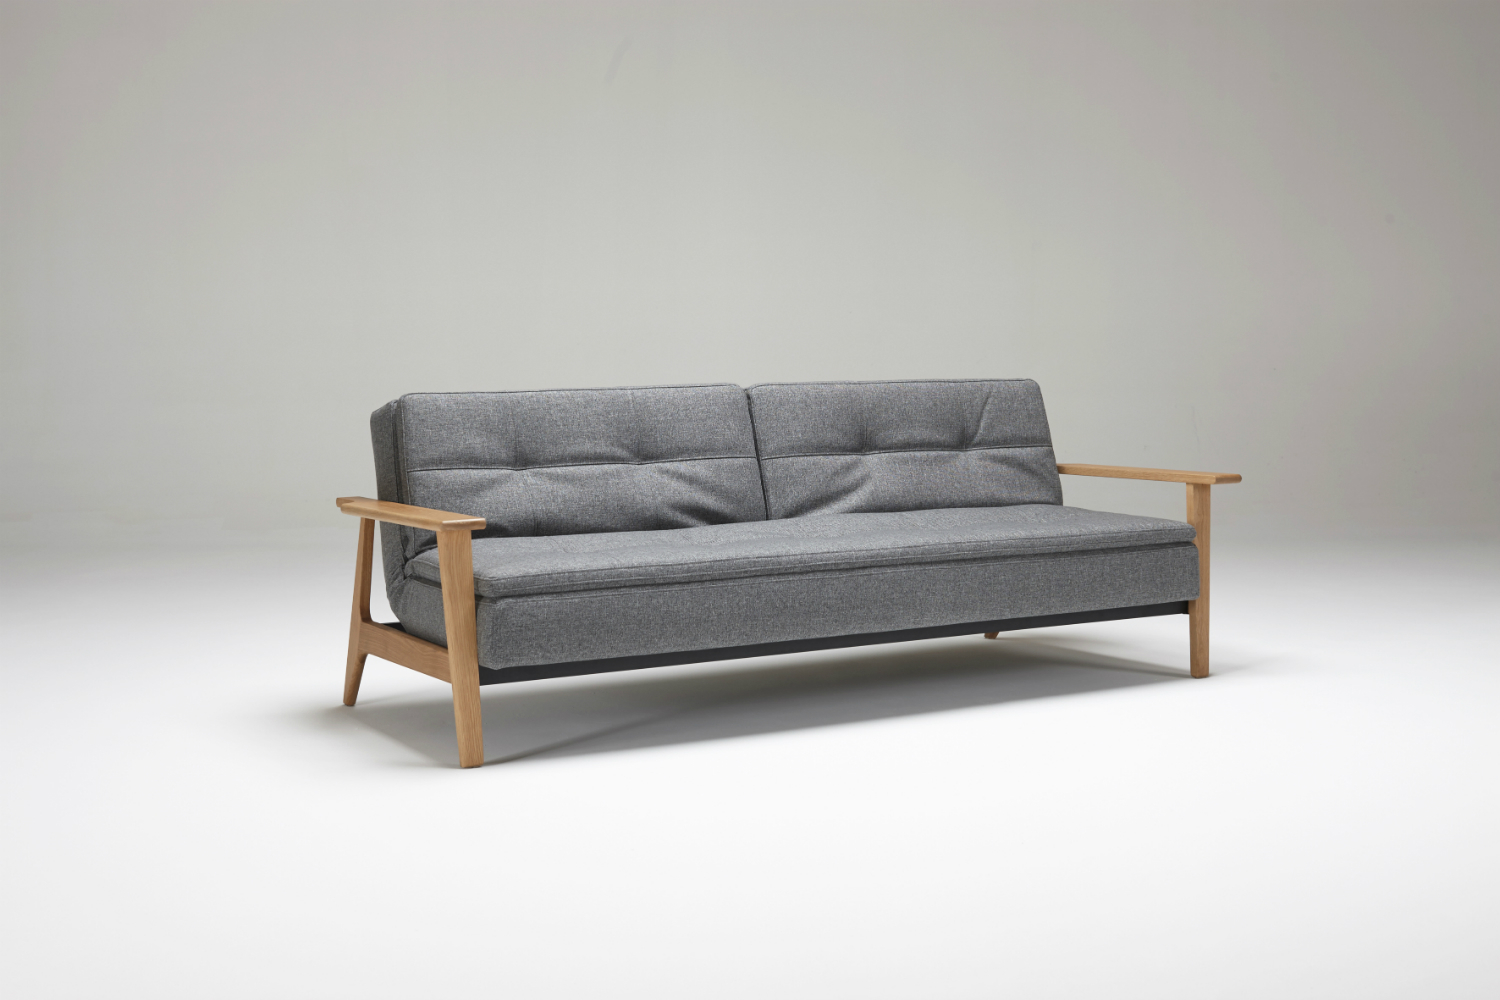 Dublexo Frej Sofa Bed Innovation Living Melbourne